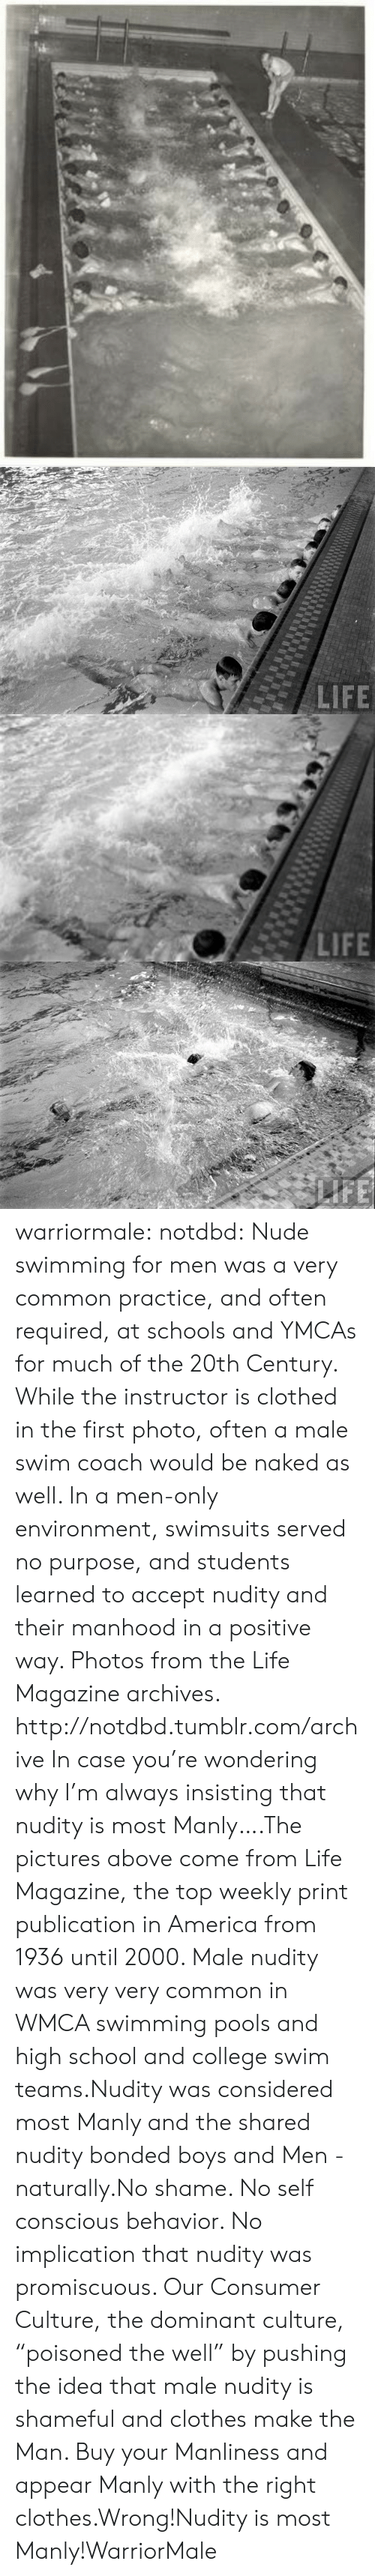 "promiscuous: warriormale:  notdbd: Nude swimming for men was a very common practice, and often required, at schools and YMCAs for much of the 20th Century. While the instructor is clothed in the first photo, often a male swim coach would be naked as well. In a men-only environment, swimsuits served no purpose, and students learned to accept nudity and their manhood in a positive way. Photos from the Life Magazine archives.   http://notdbd.tumblr.com/archive  In case you're wondering why I'm always insisting that nudity is most Manly….The pictures above come from Life Magazine, the top weekly print publication in America from 1936 until 2000. Male nudity was very very common in WMCA swimming pools and high school and college swim teams.Nudity was considered most Manly and the shared nudity bonded boys and Men -  naturally.No shame. No self conscious behavior. No implication that nudity was promiscuous. Our Consumer Culture, the dominant culture,  ""poisoned the well"" by pushing the idea that male nudity is shameful and clothes make the Man. Buy your Manliness and appear Manly with the right clothes.Wrong!Nudity is most Manly!WarriorMale"